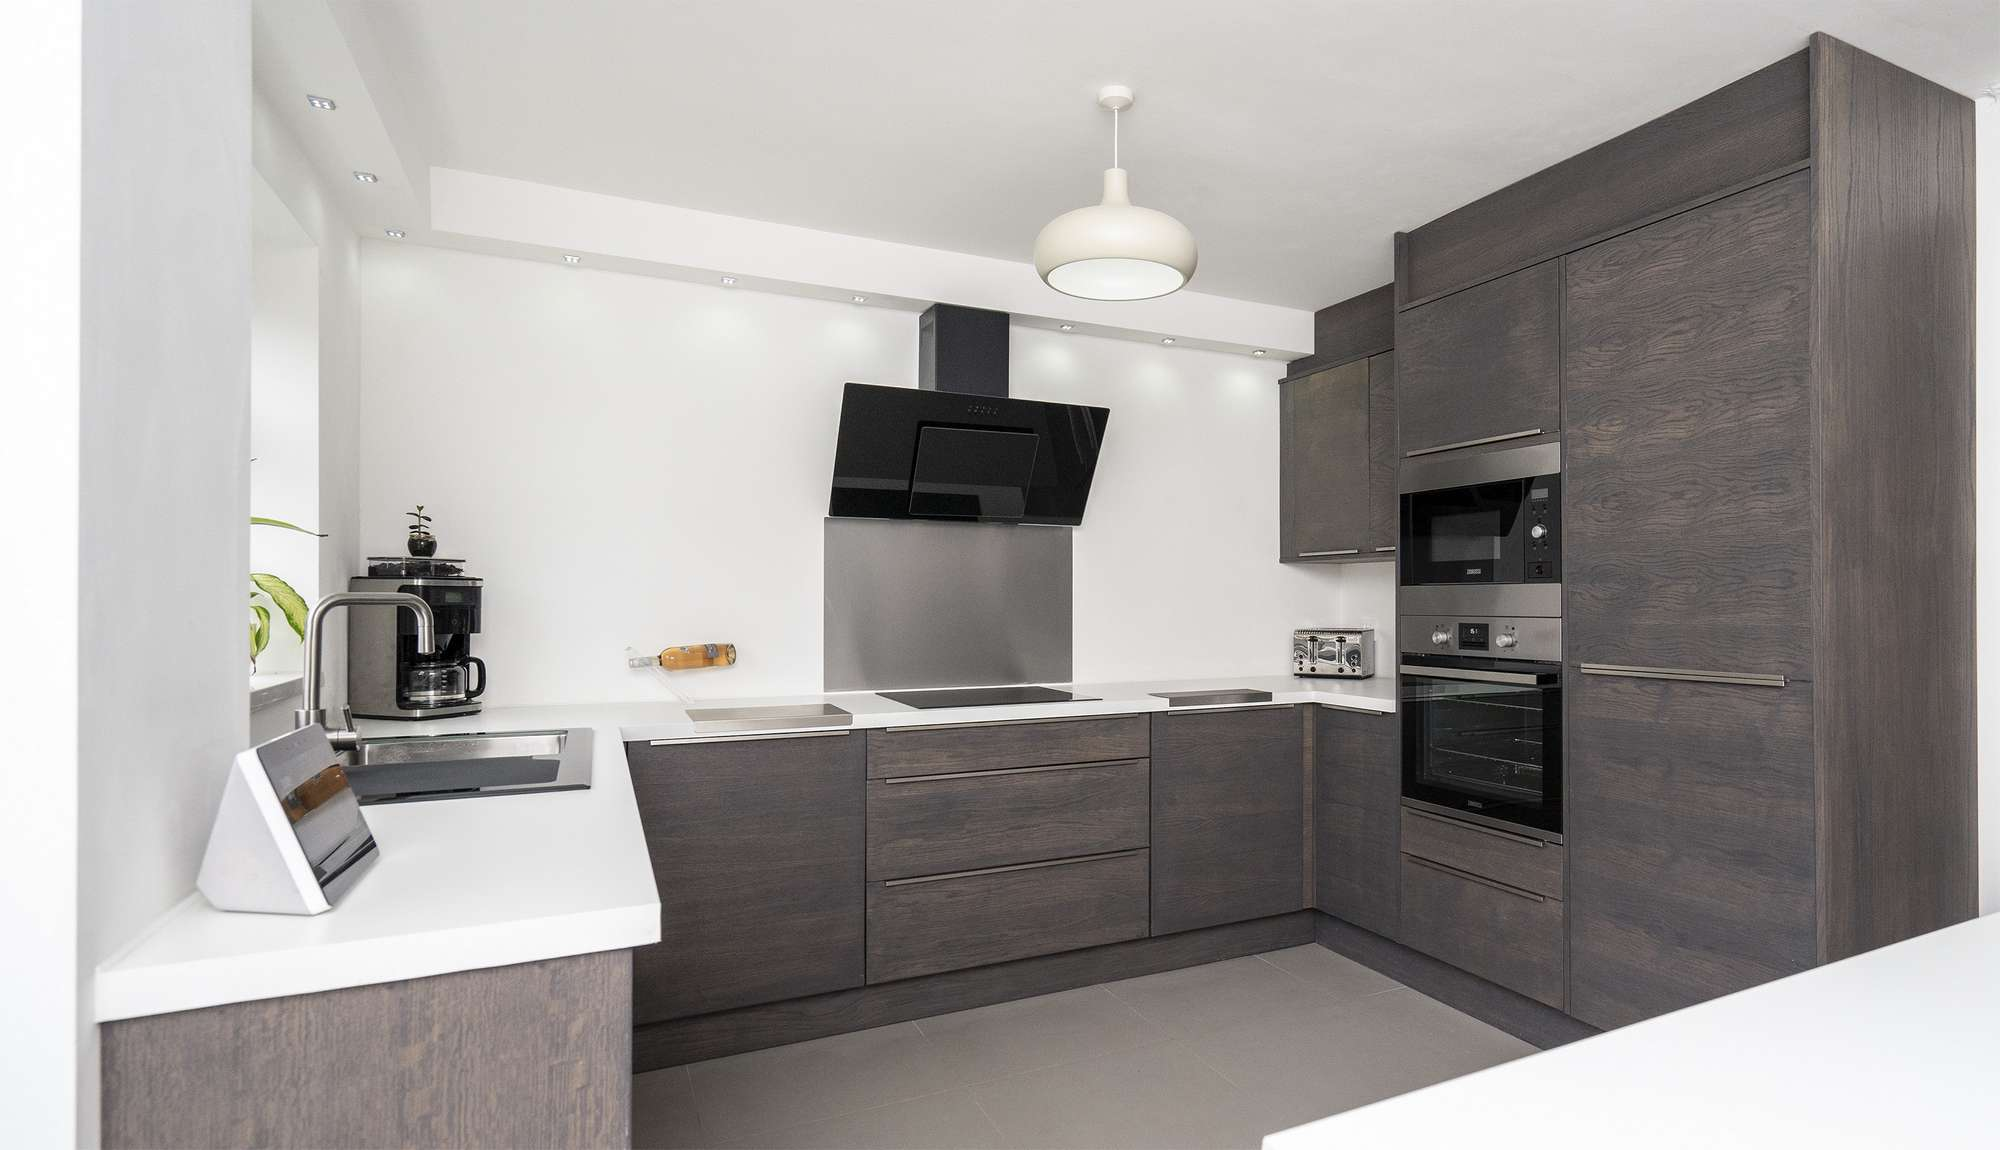 Walnut slab kitchen with slimline stainless steel handles and integrated appliances.